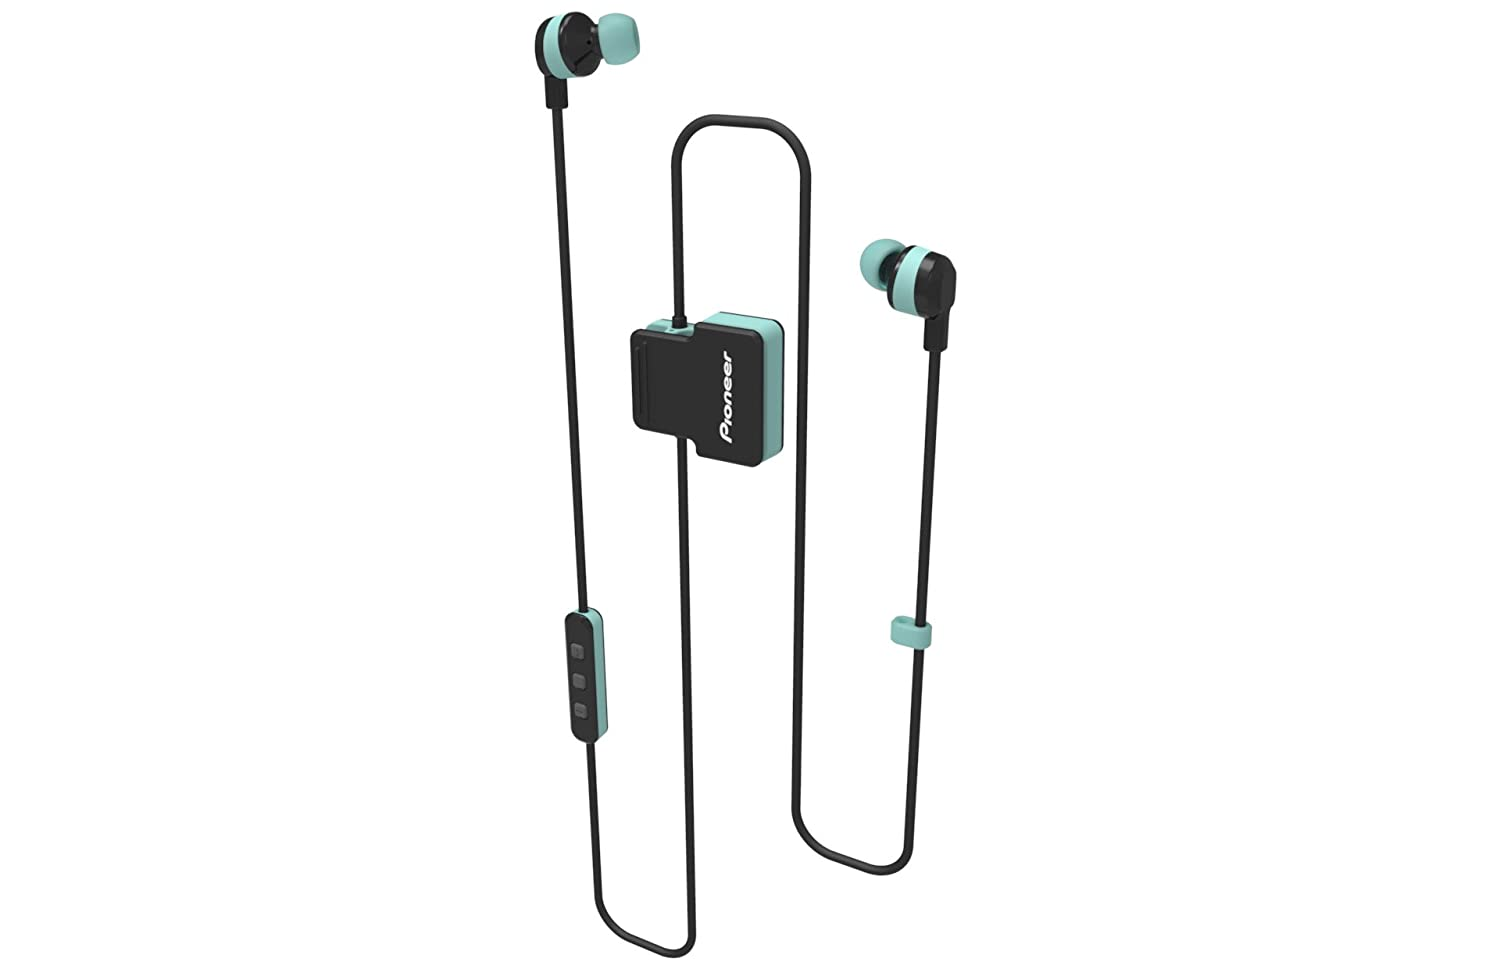 b441e71ba65 Pioneer SE-CL5BT-GR Wireless Bluetooth Earphones: Amazon.co.uk: Electronics